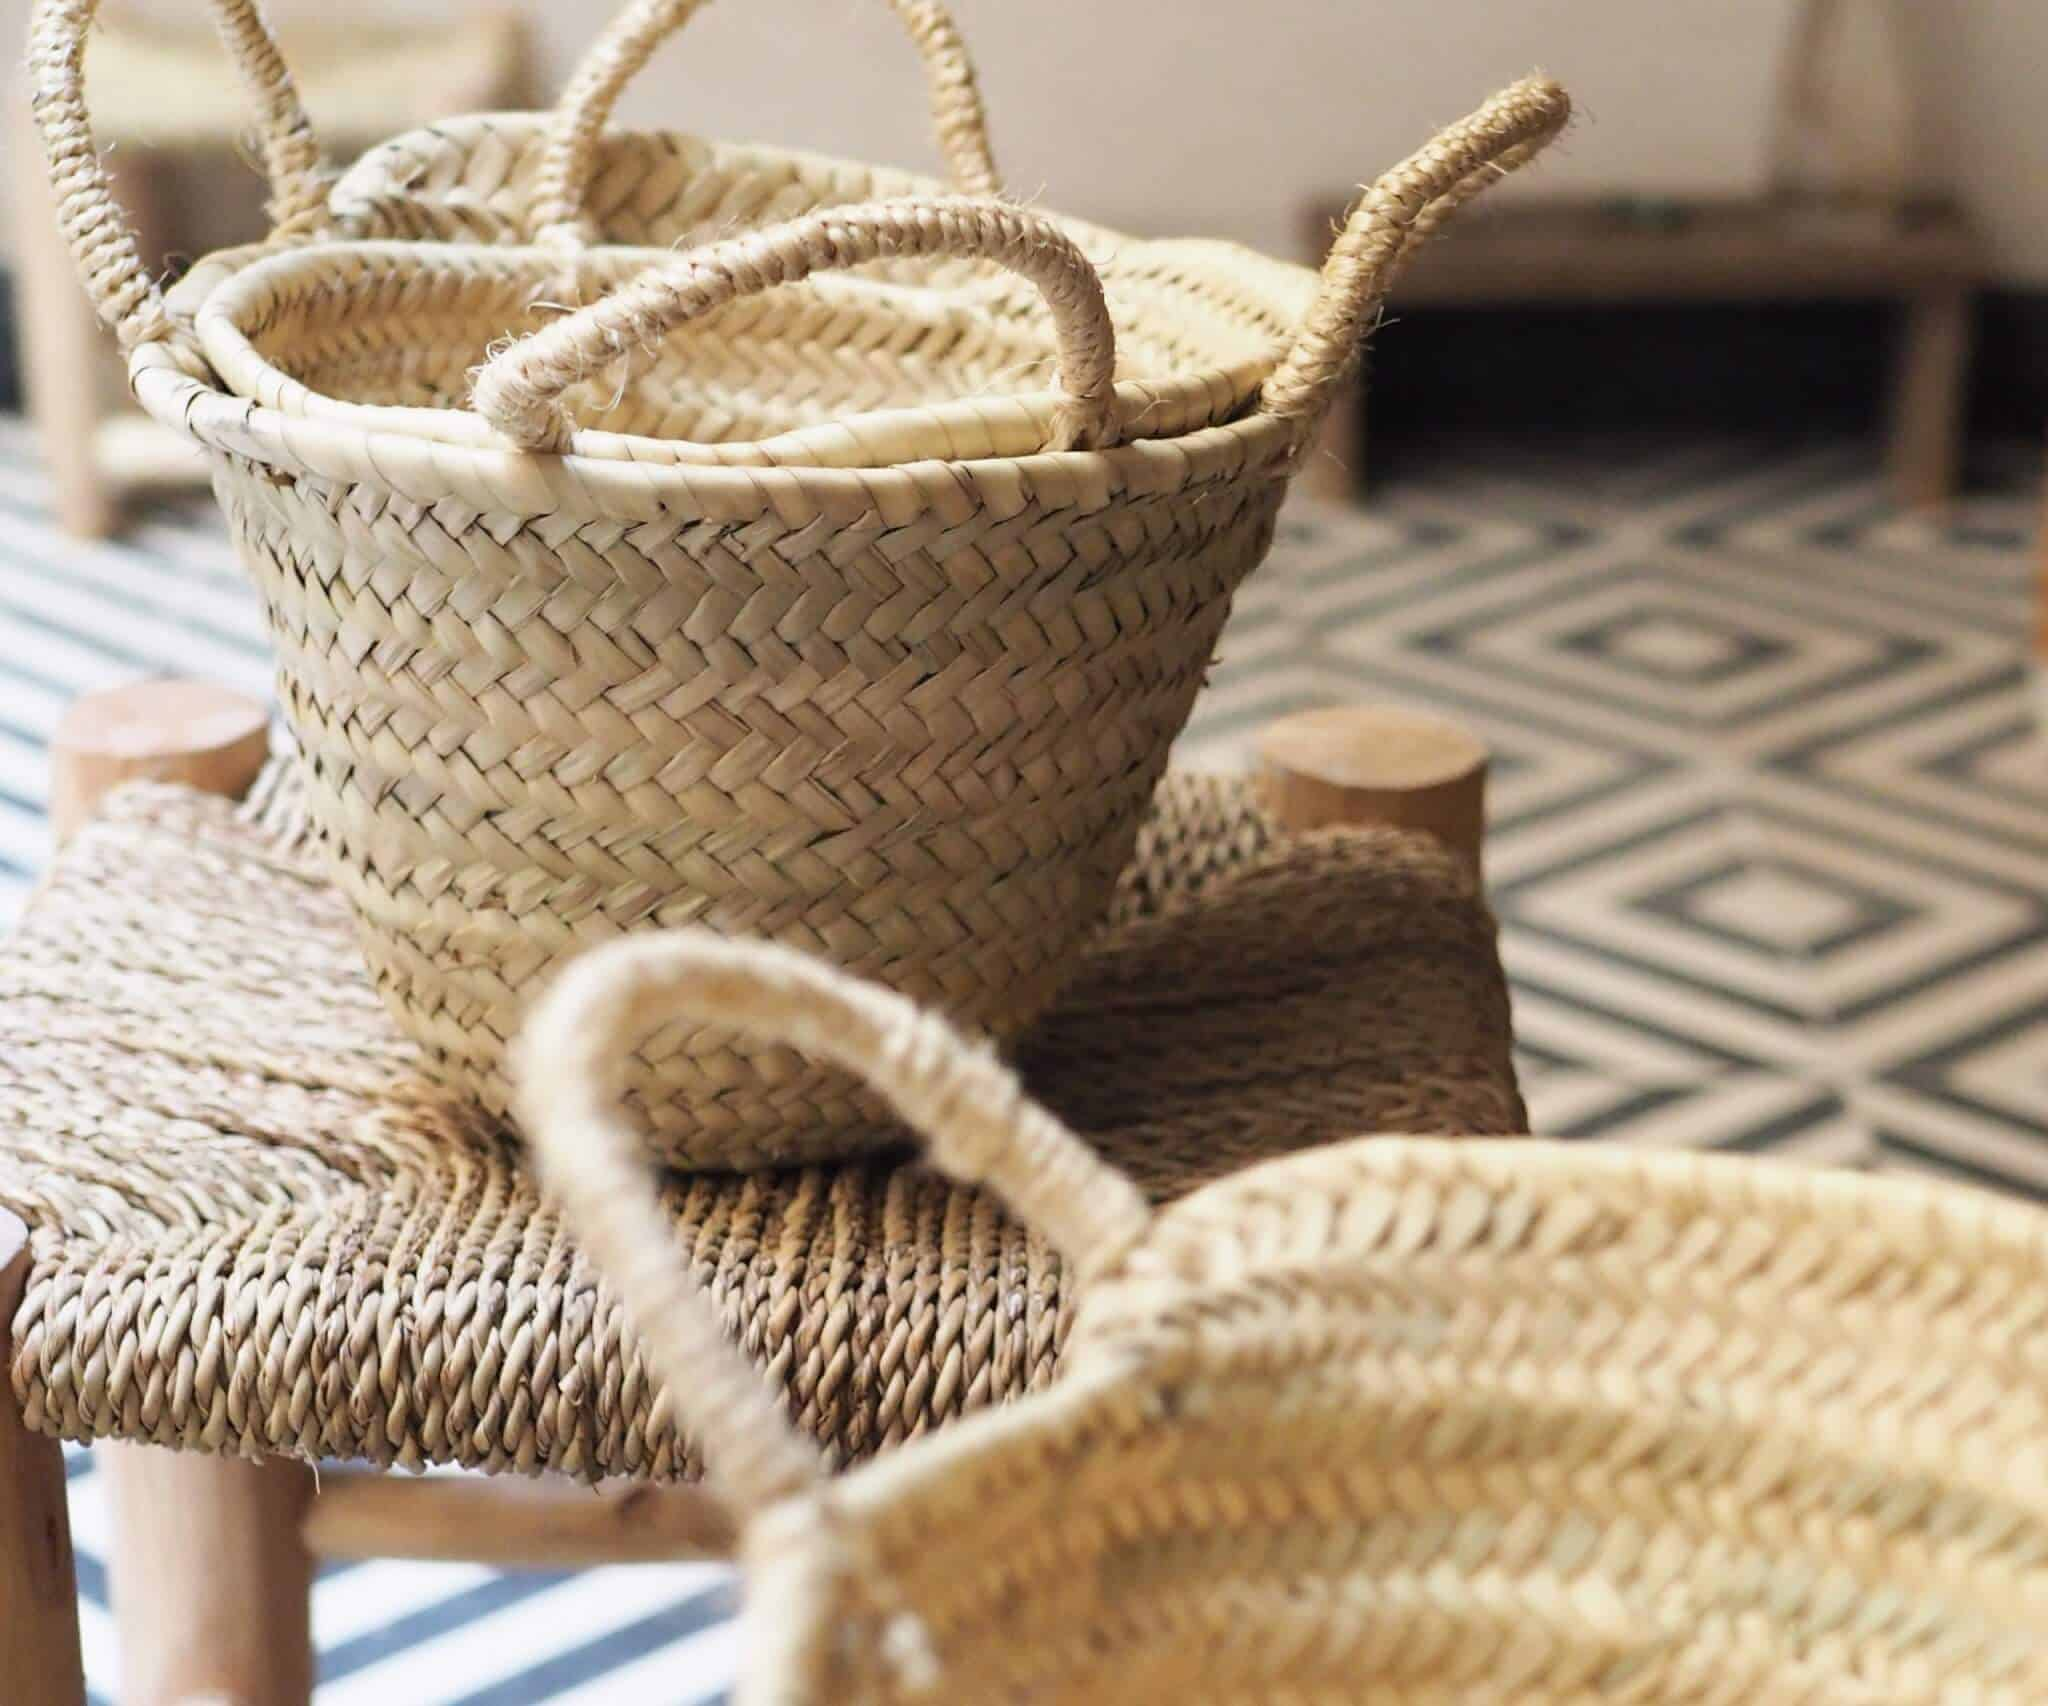 Woven baskets made in Morocco